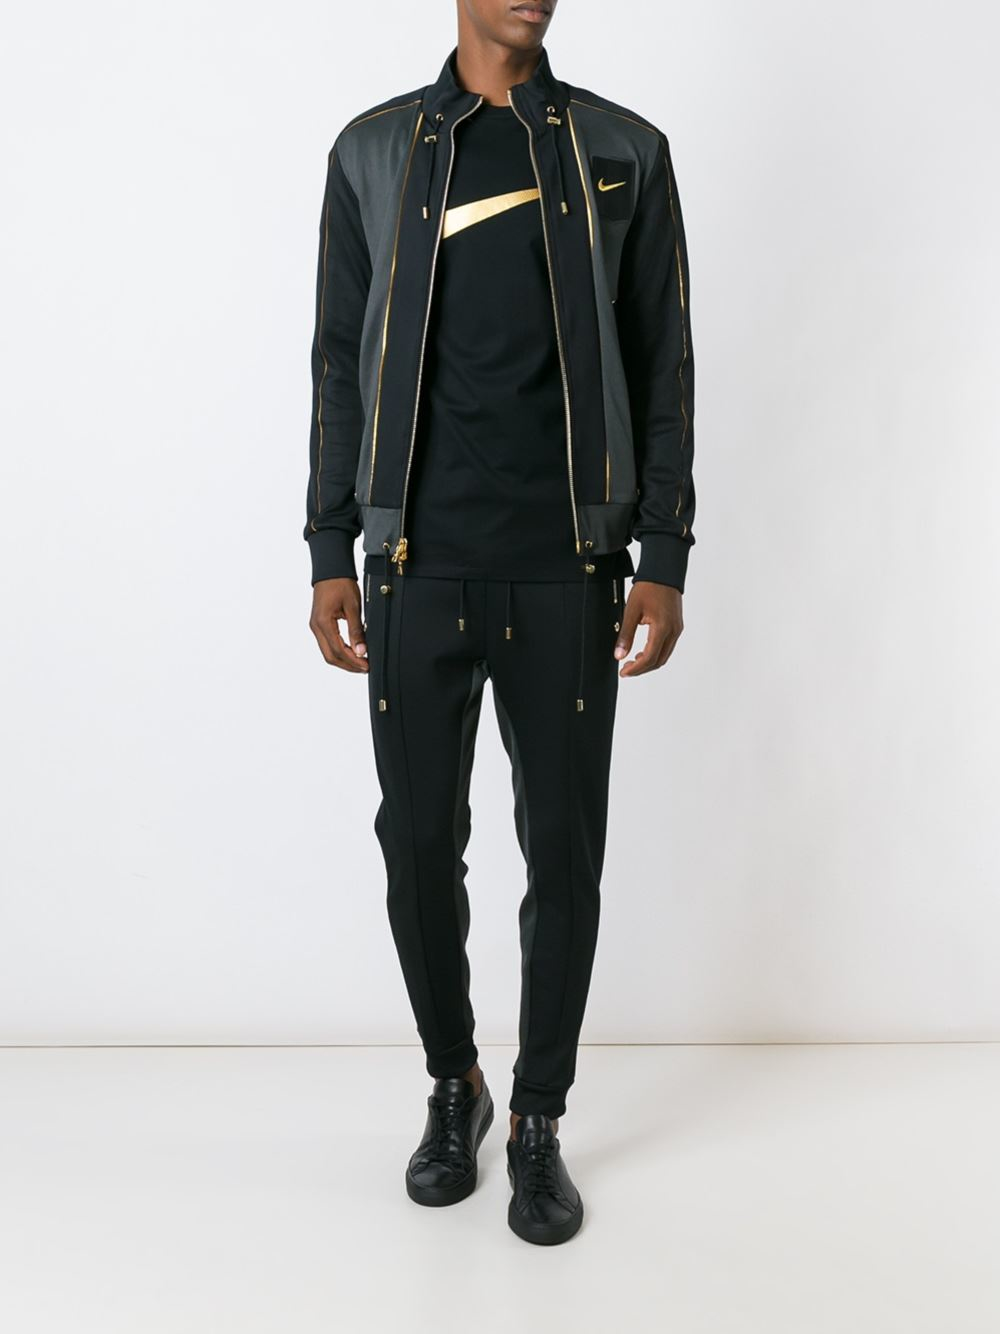 Nike Cotton Lab X Olivier Rousteing Sports Jacket in Black for Men